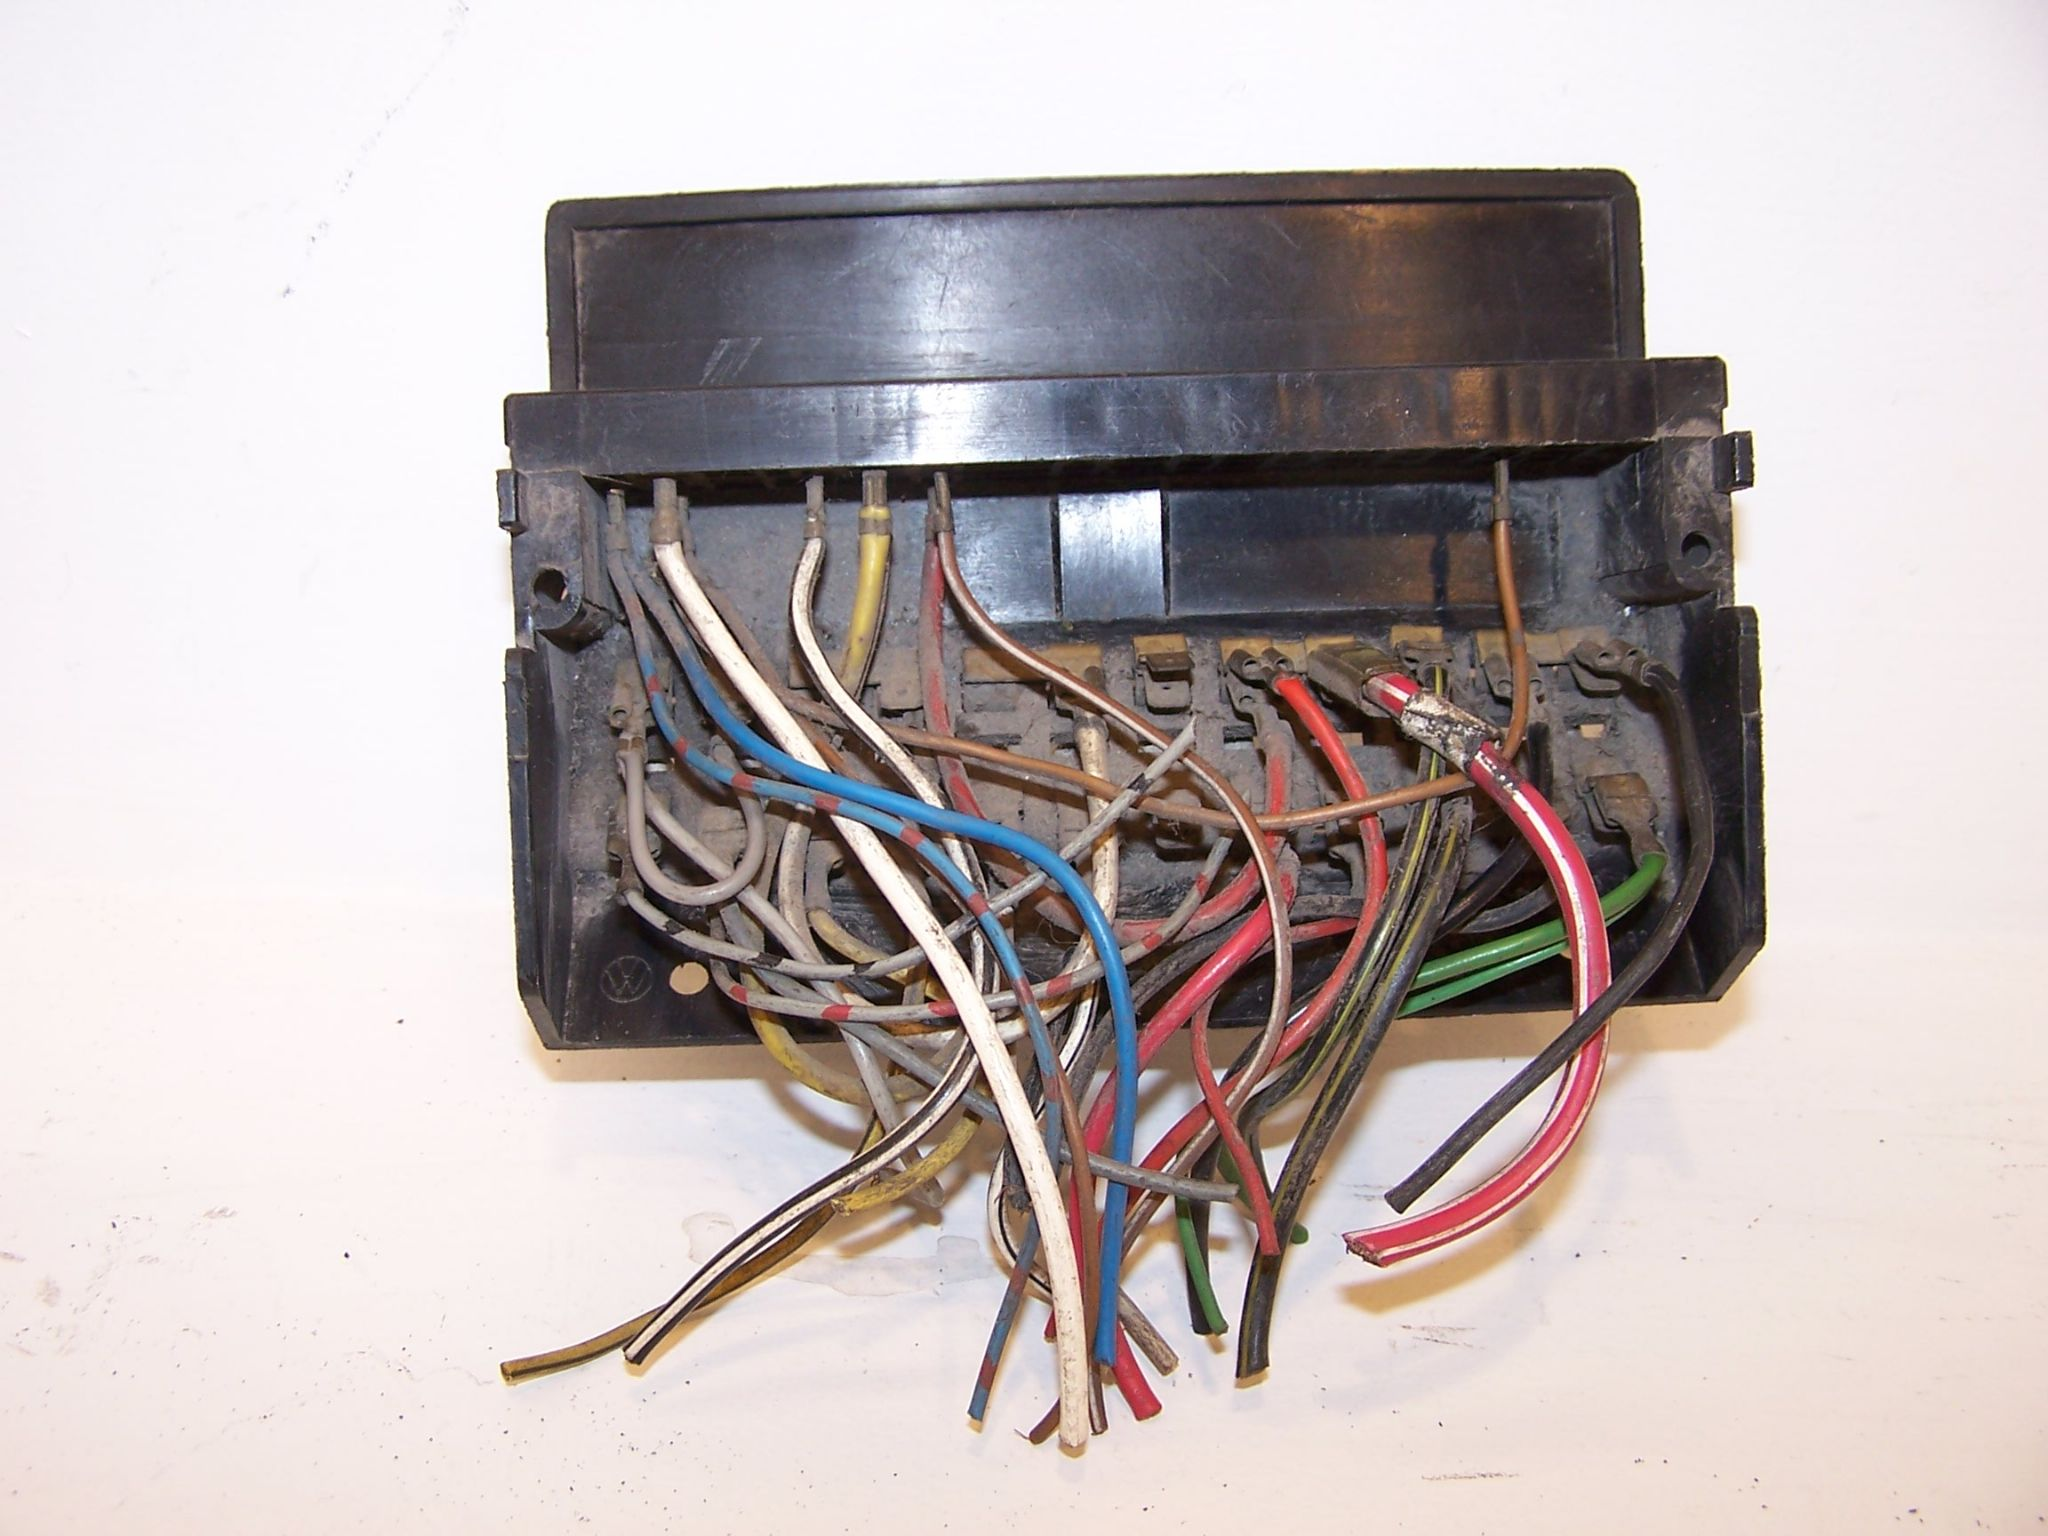 74 nova fuse box wiring diagram 1974 nova fuse box wiring diagram centre 1974 nova fuse box